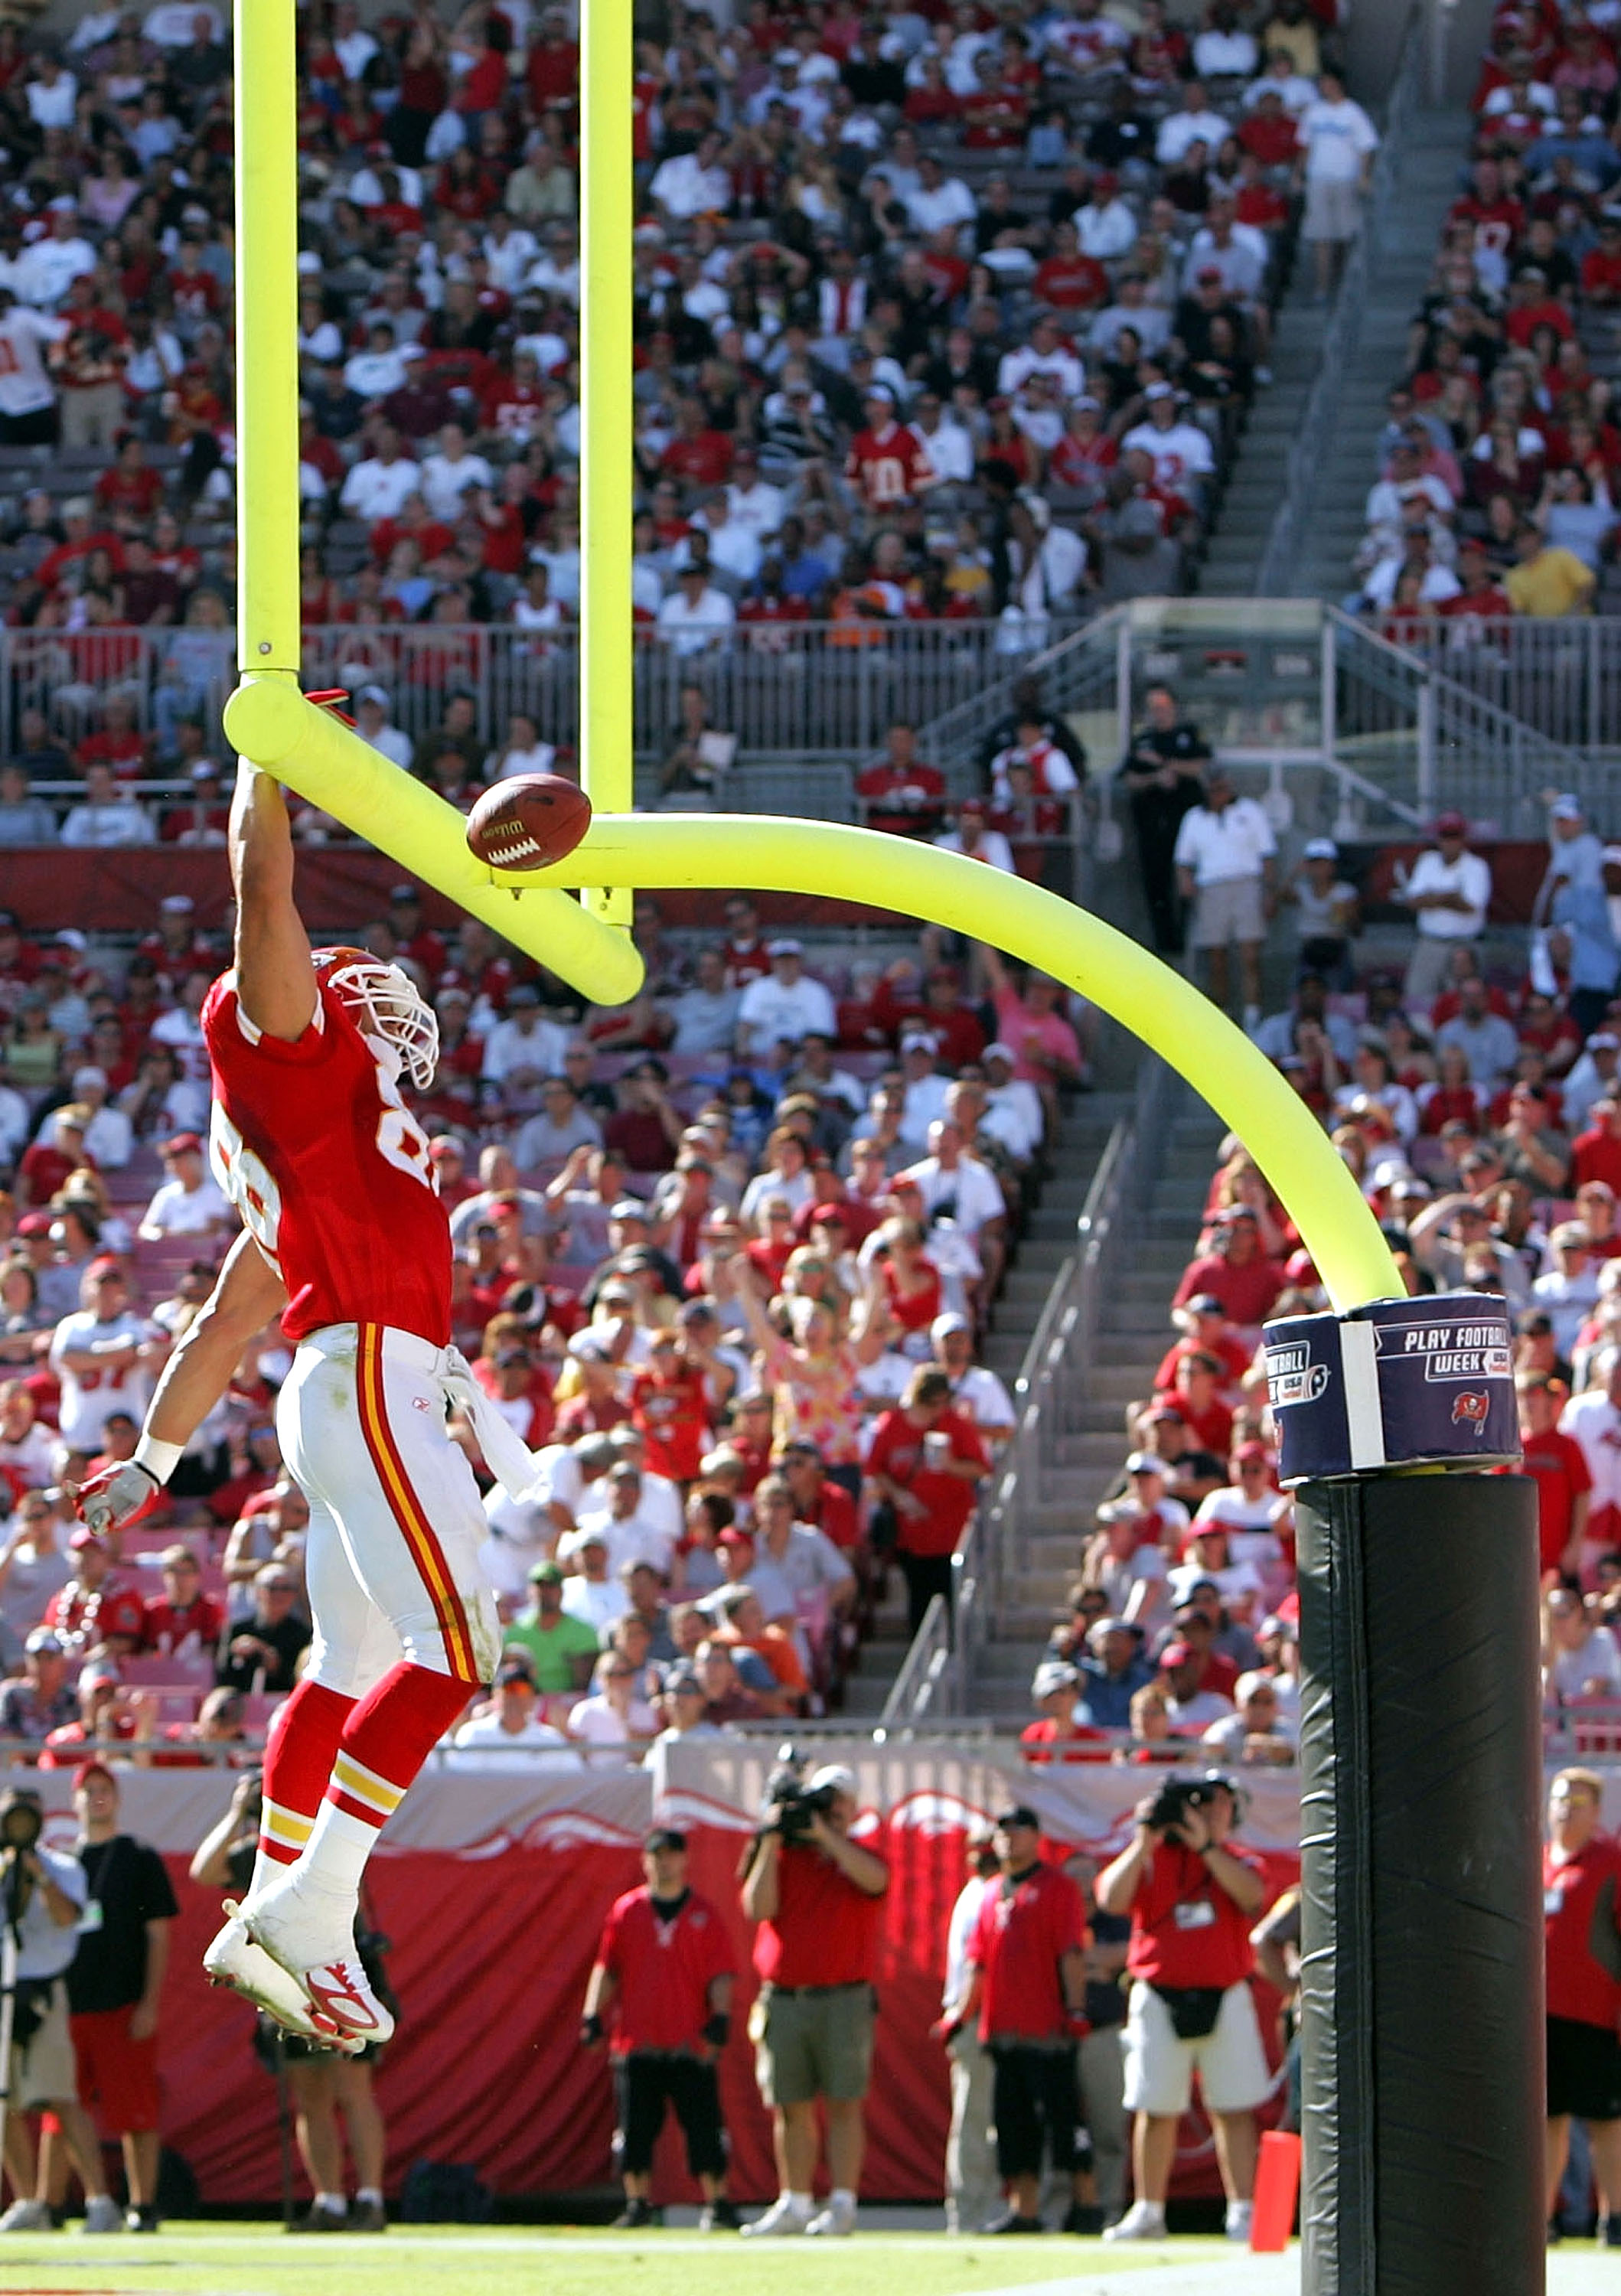 TAMPA, FL - NOVEMBER 7:  Tight end Tony Gonzalez #88 of the Kansas City Chiefs celebrates his touchdown by slam dunking the ball over the goal post in the second quarter against the Tampa Bay Buccaneers at Raymond James Stadium on November 7, 2004 in Tamp